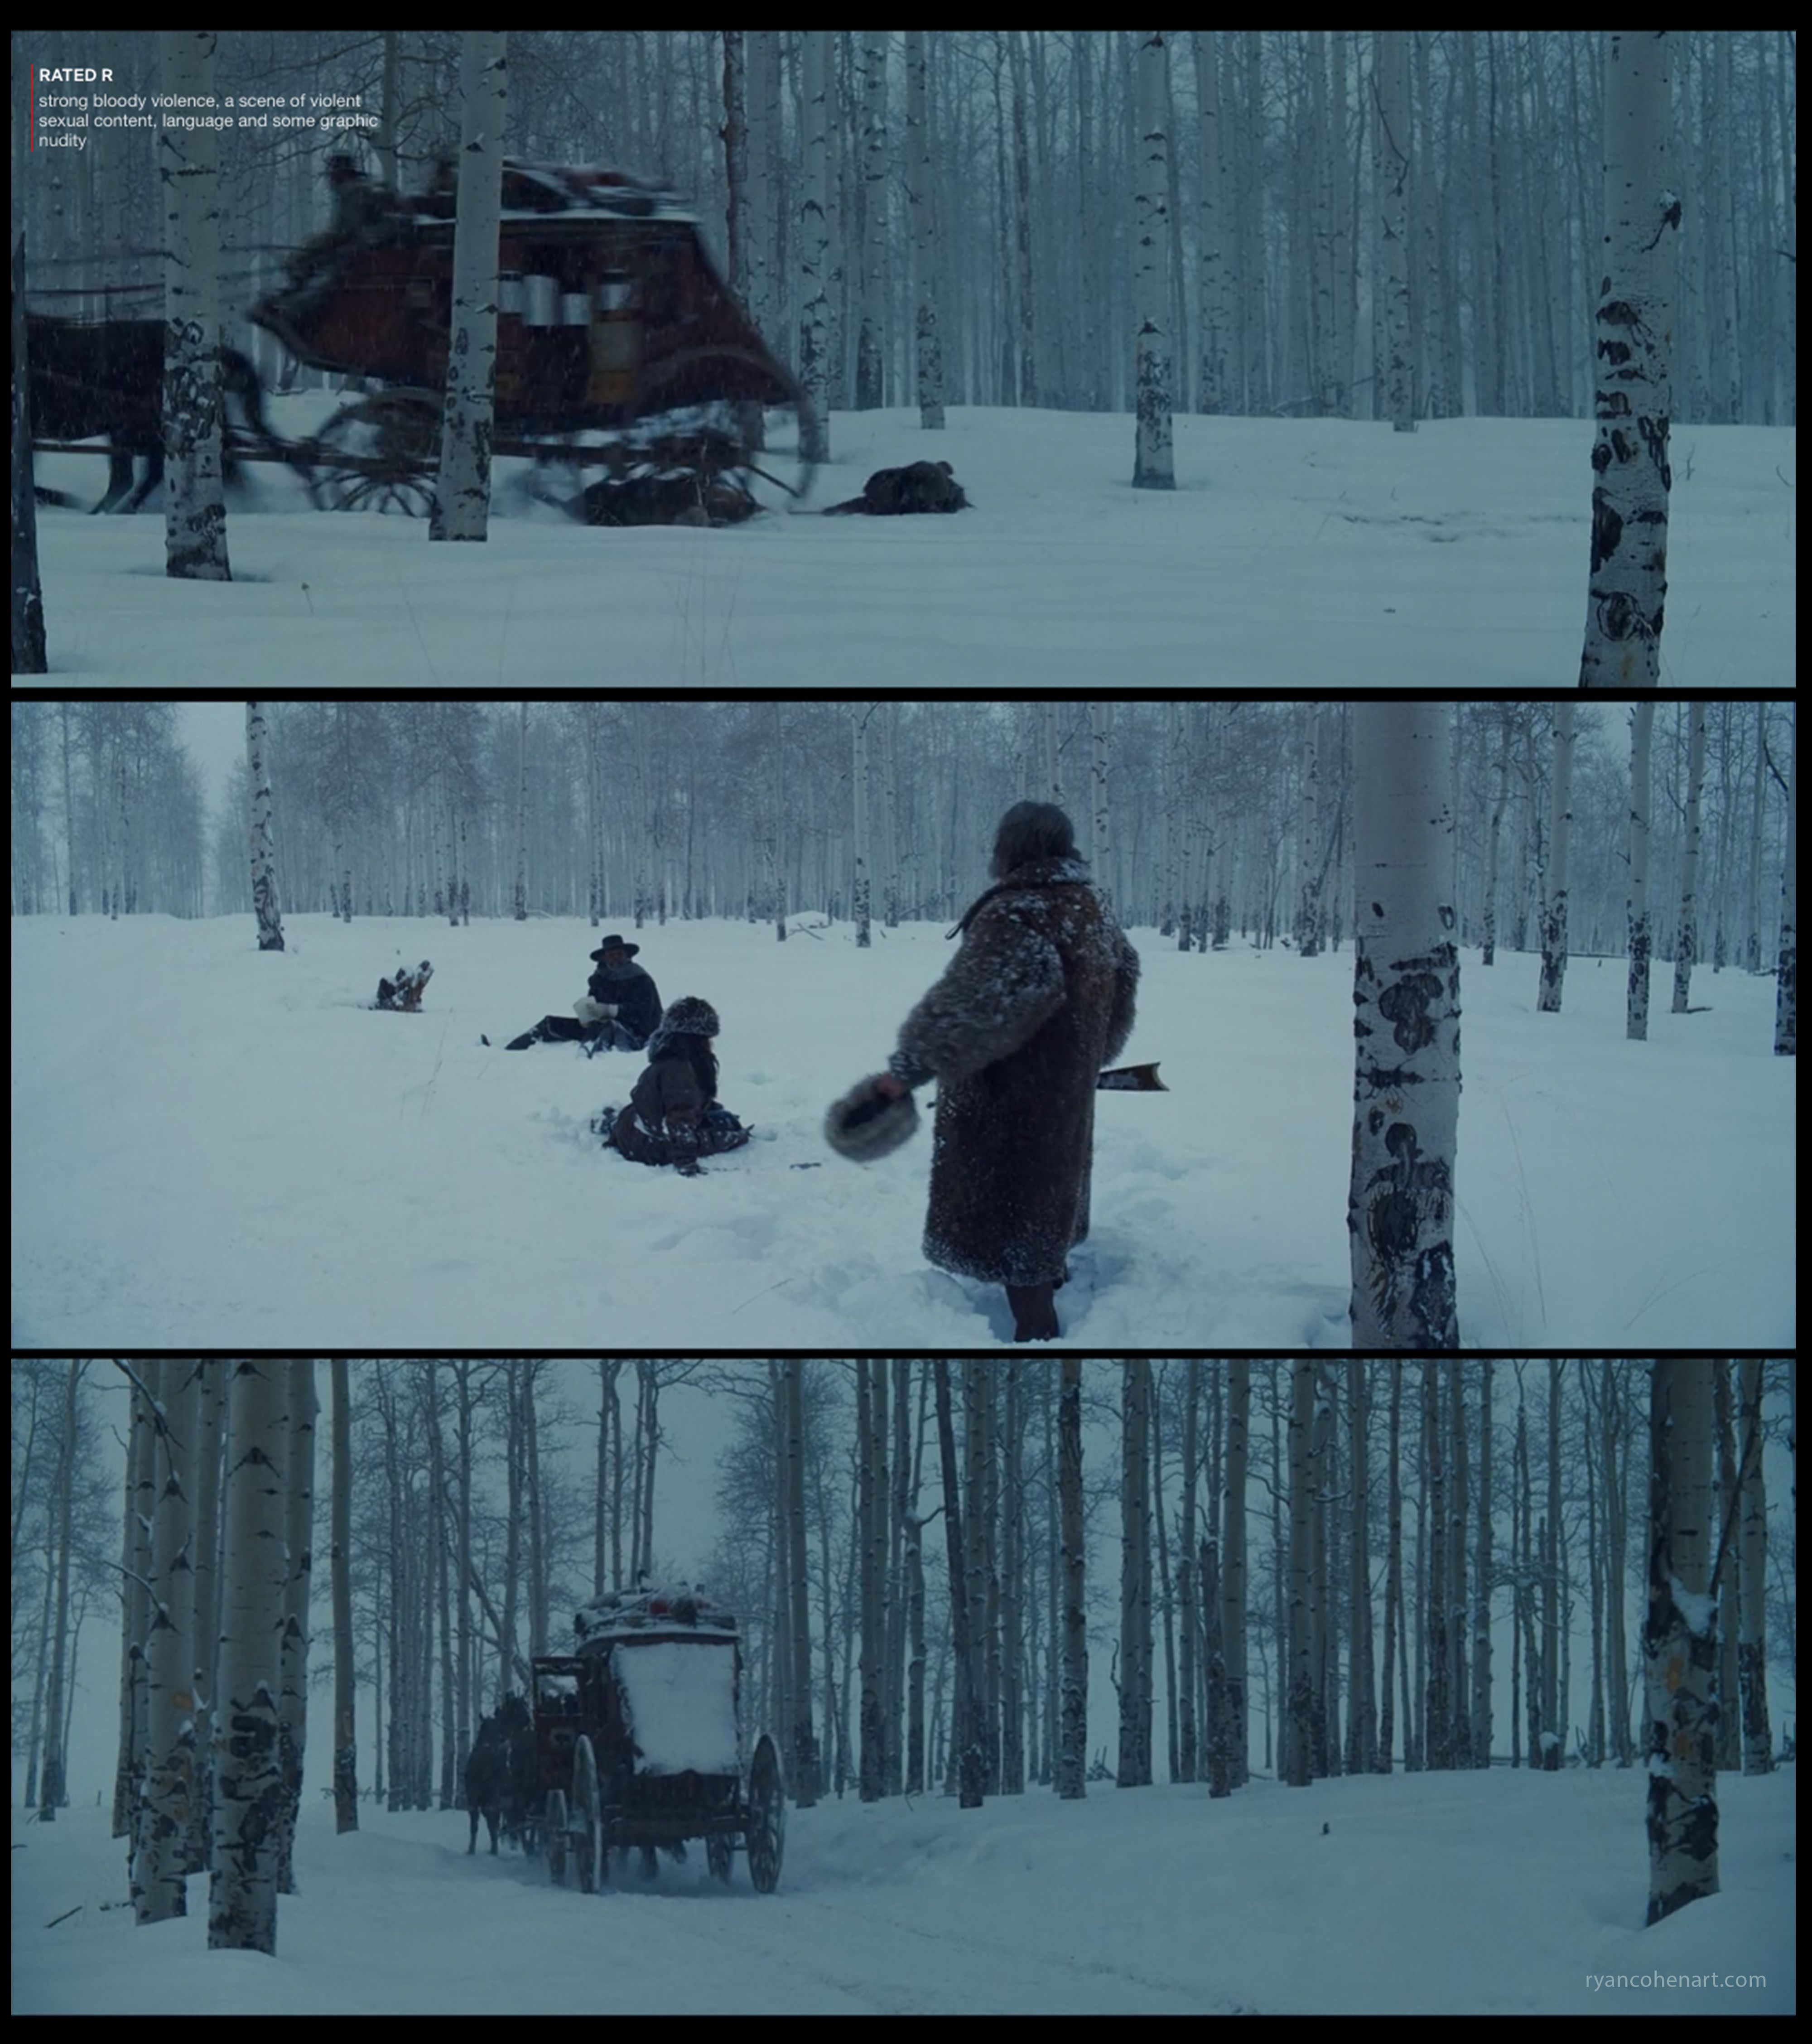 The Hateful Eight Screencaps Filmcolor Filmstills Filmstudy Cinematography The Hateful Eight Musical Movies Cinematography